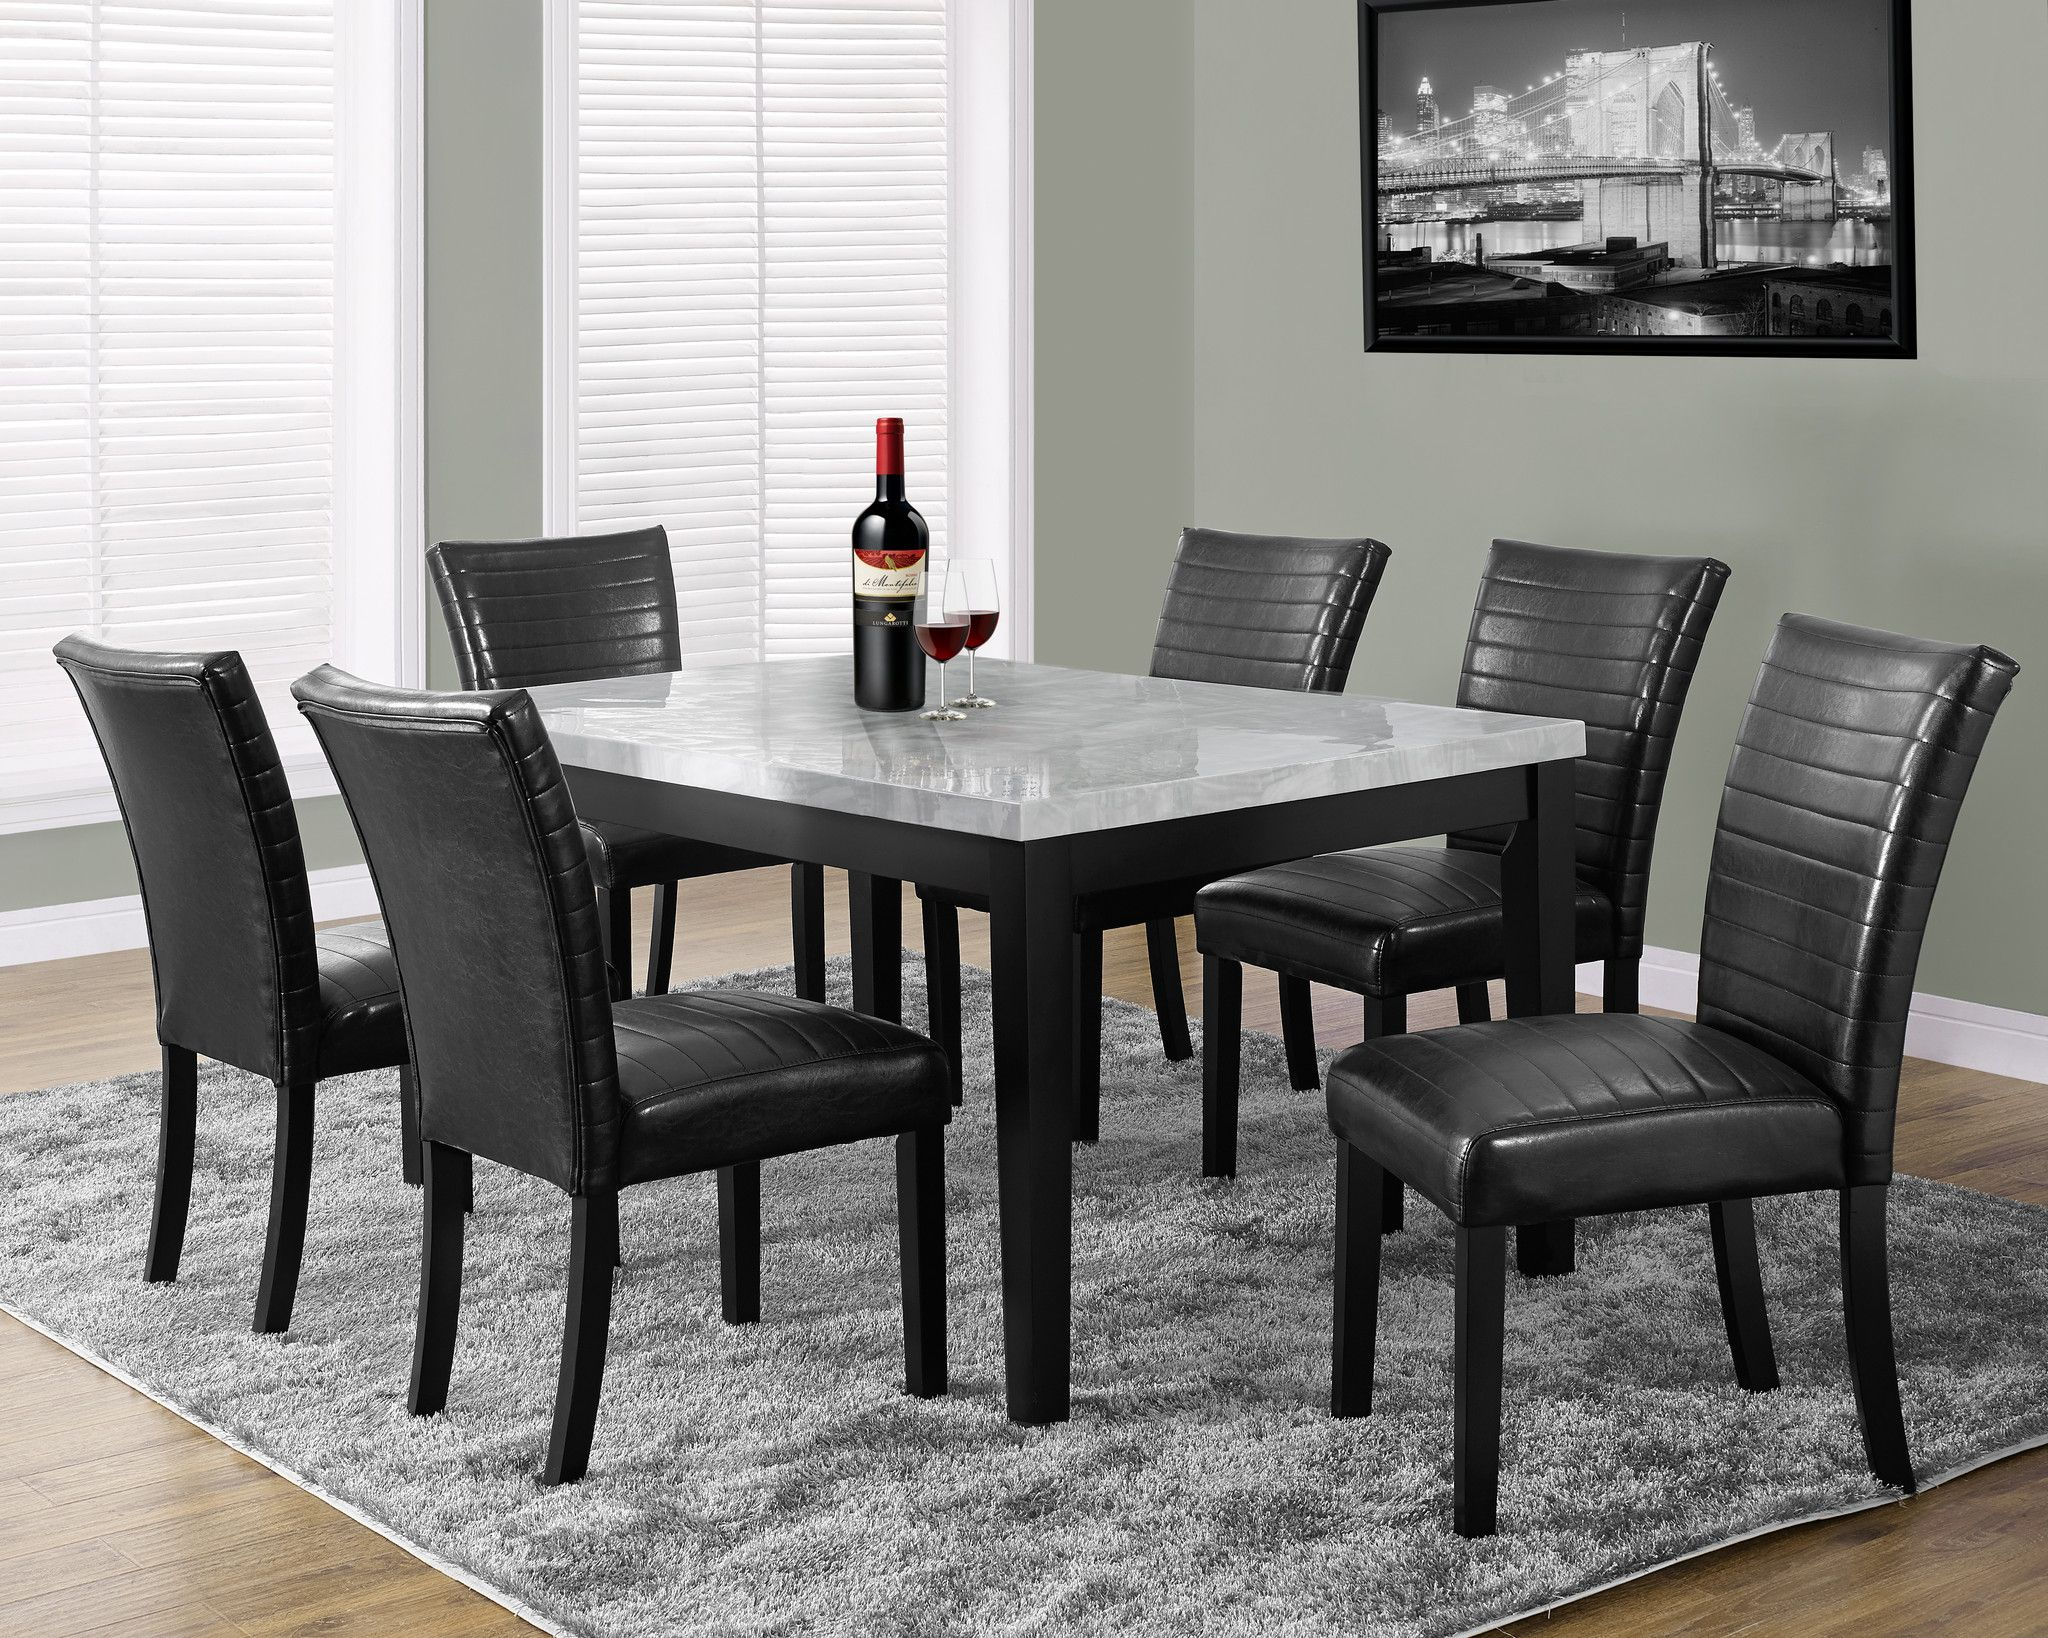 """Dining Table - 38""""X 64"""" / Grey Laquered Marble-Look 